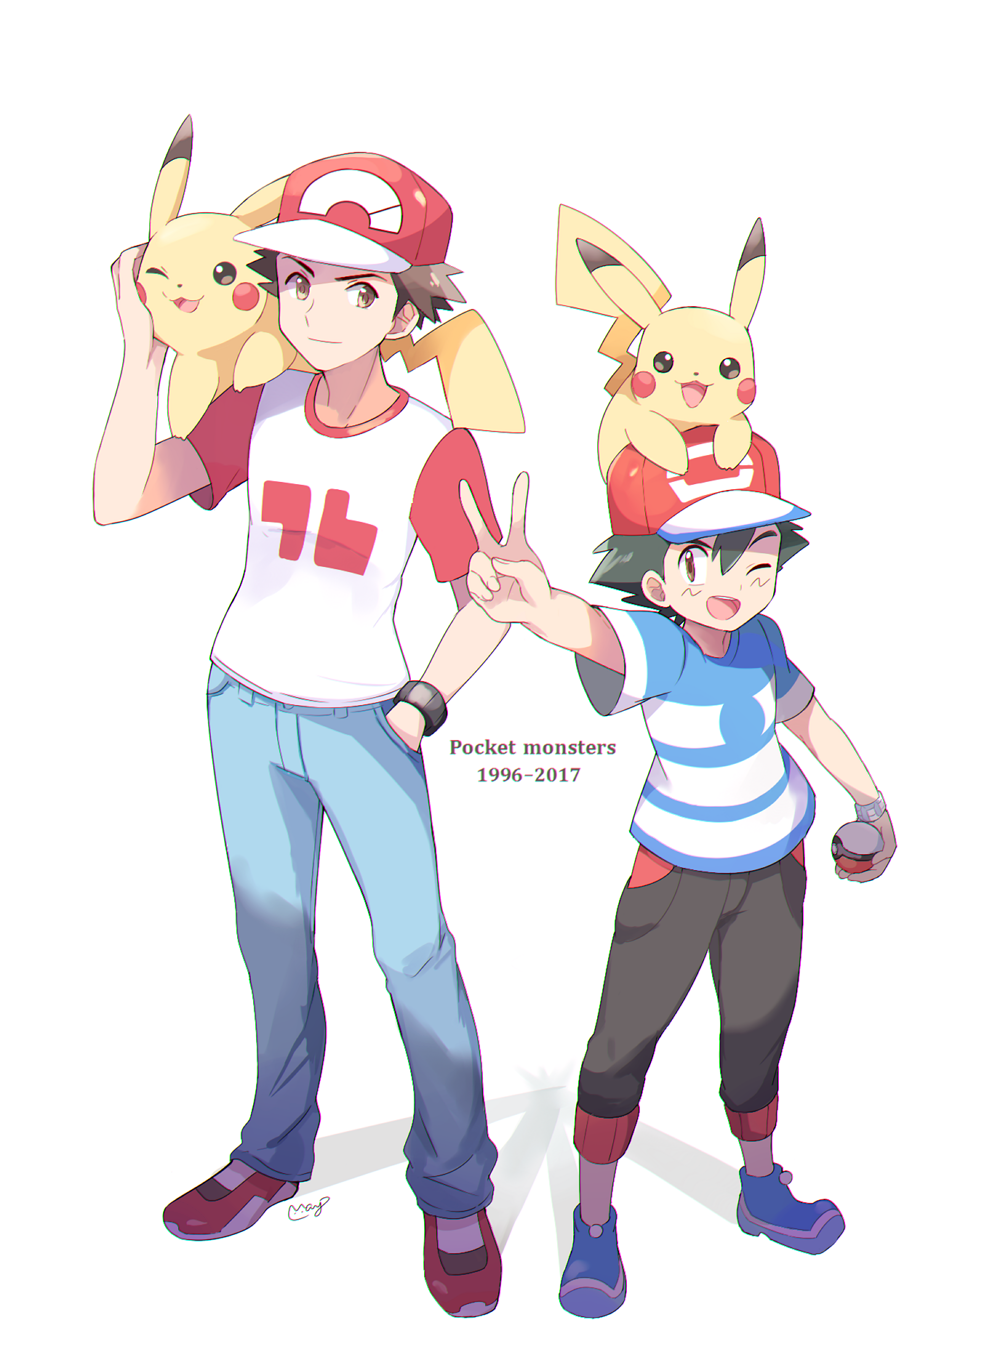 2boys age_difference animal animal_on_head animal_on_shoulder anniversary baseball_cap black_hair brown_eyes brown_hair capri_pants denim hand_in_pocket hat highres holding holding_poke_ball jeans male_focus mei_(maysroom) multiple_boys on_head one_eye_closed pants pikachu poke_ball pokemon pokemon_(anime) pokemon_(creature) pokemon_(game) pokemon_sm pokemon_sm_(anime) raglan_sleeves red_(pokemon) red_(pokemon)_(sm) satoshi_(pokemon) shadow shirt shoes short_hair signature simple_background smile sneakers striped striped_shirt t-shirt v white_background z-ring